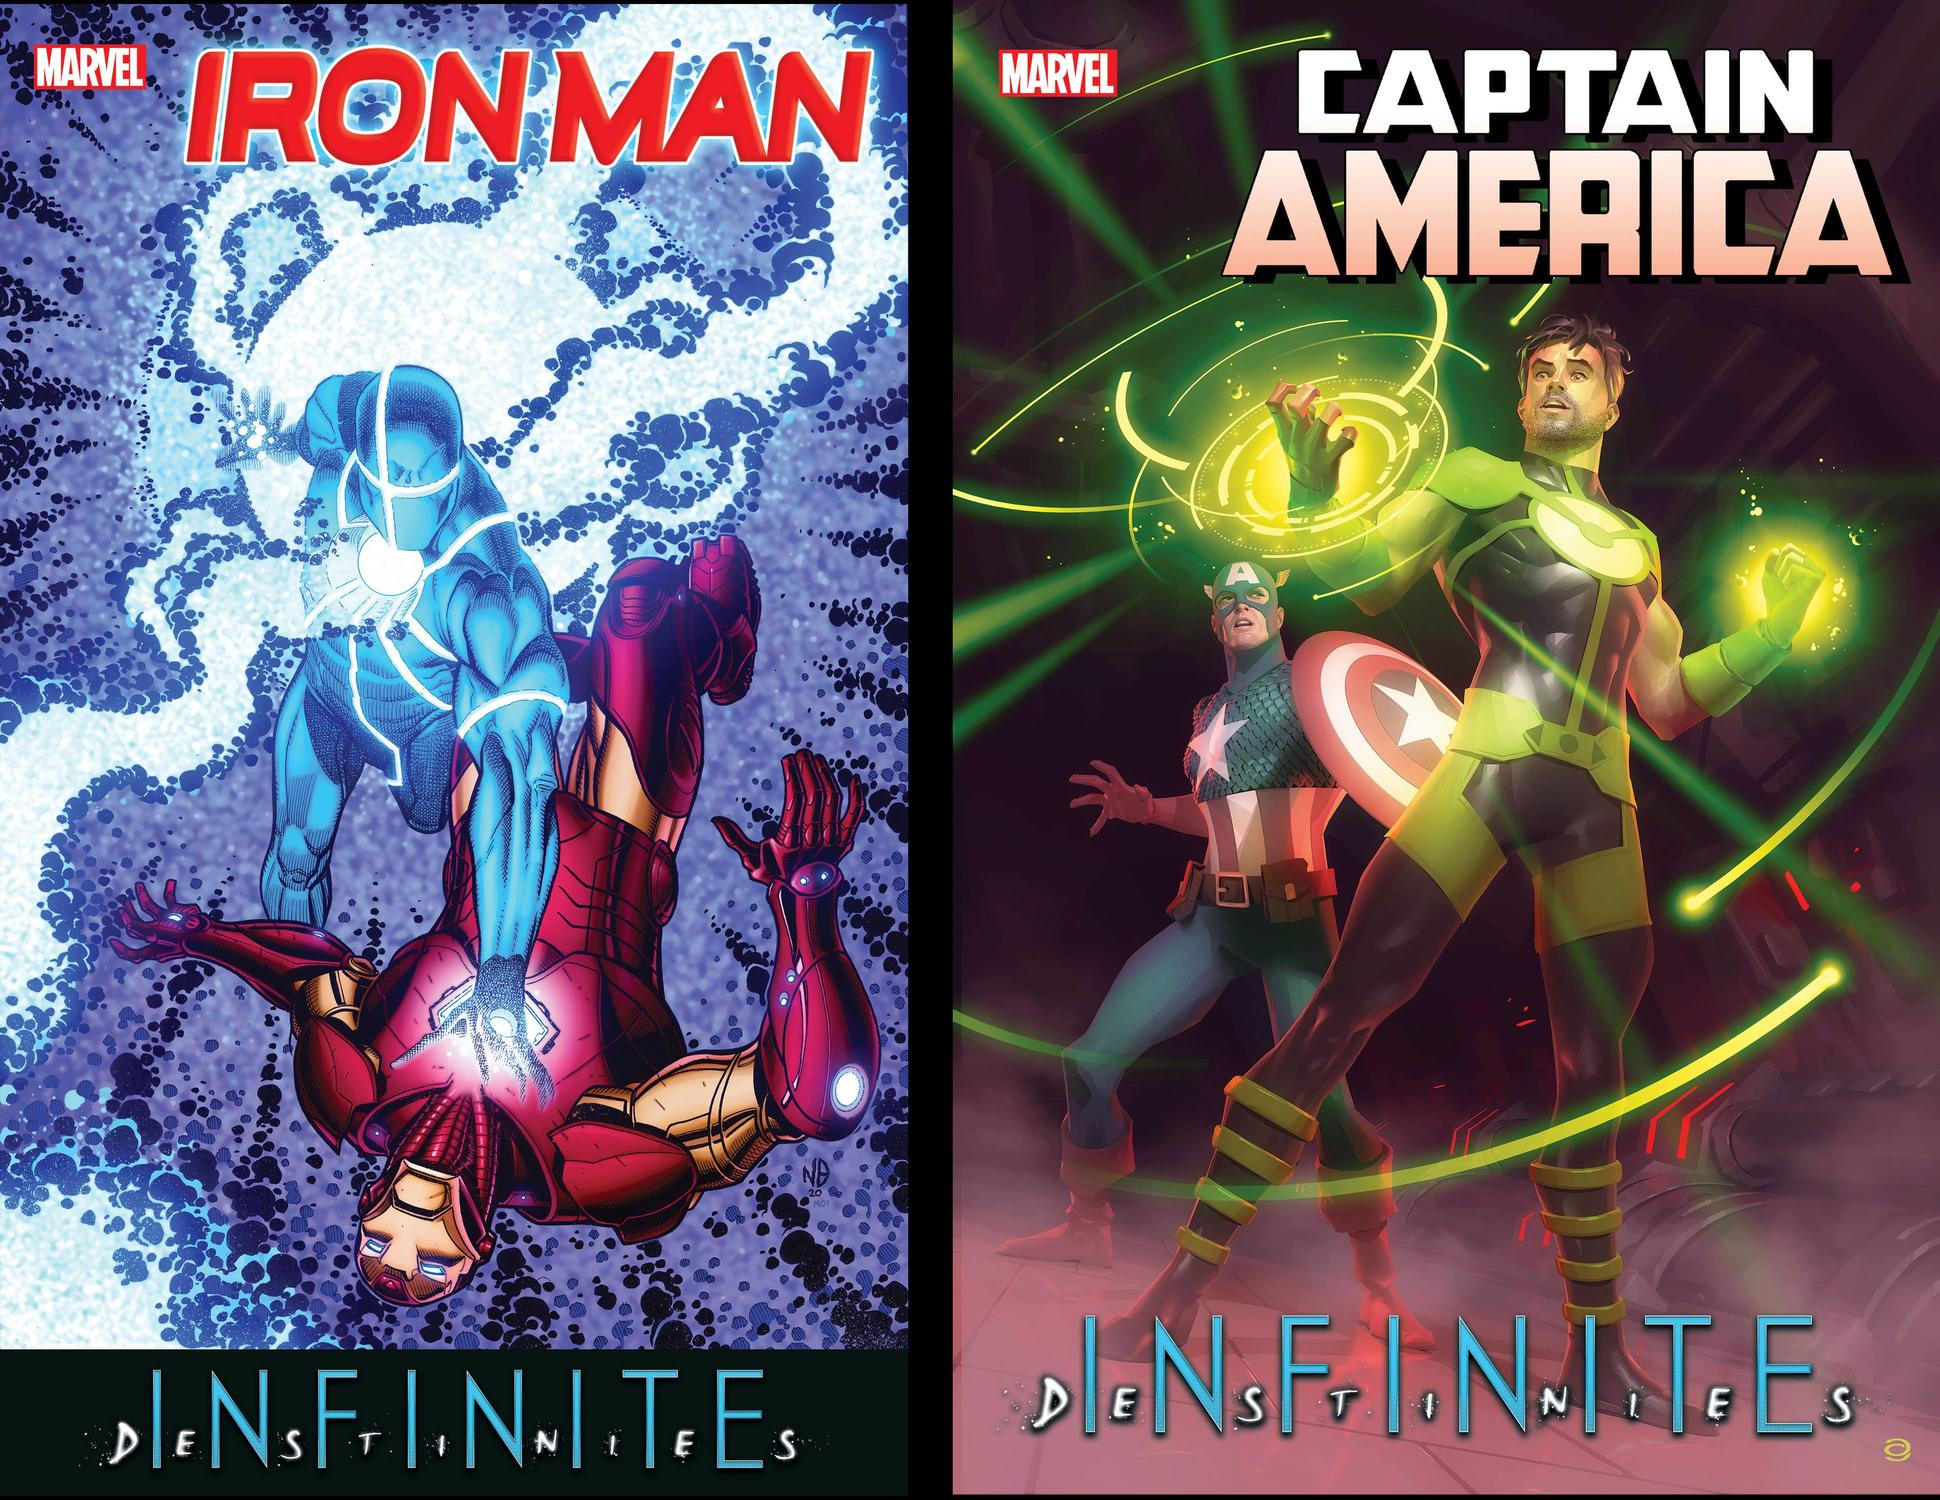 Captain America Annual and Iron Man Annual